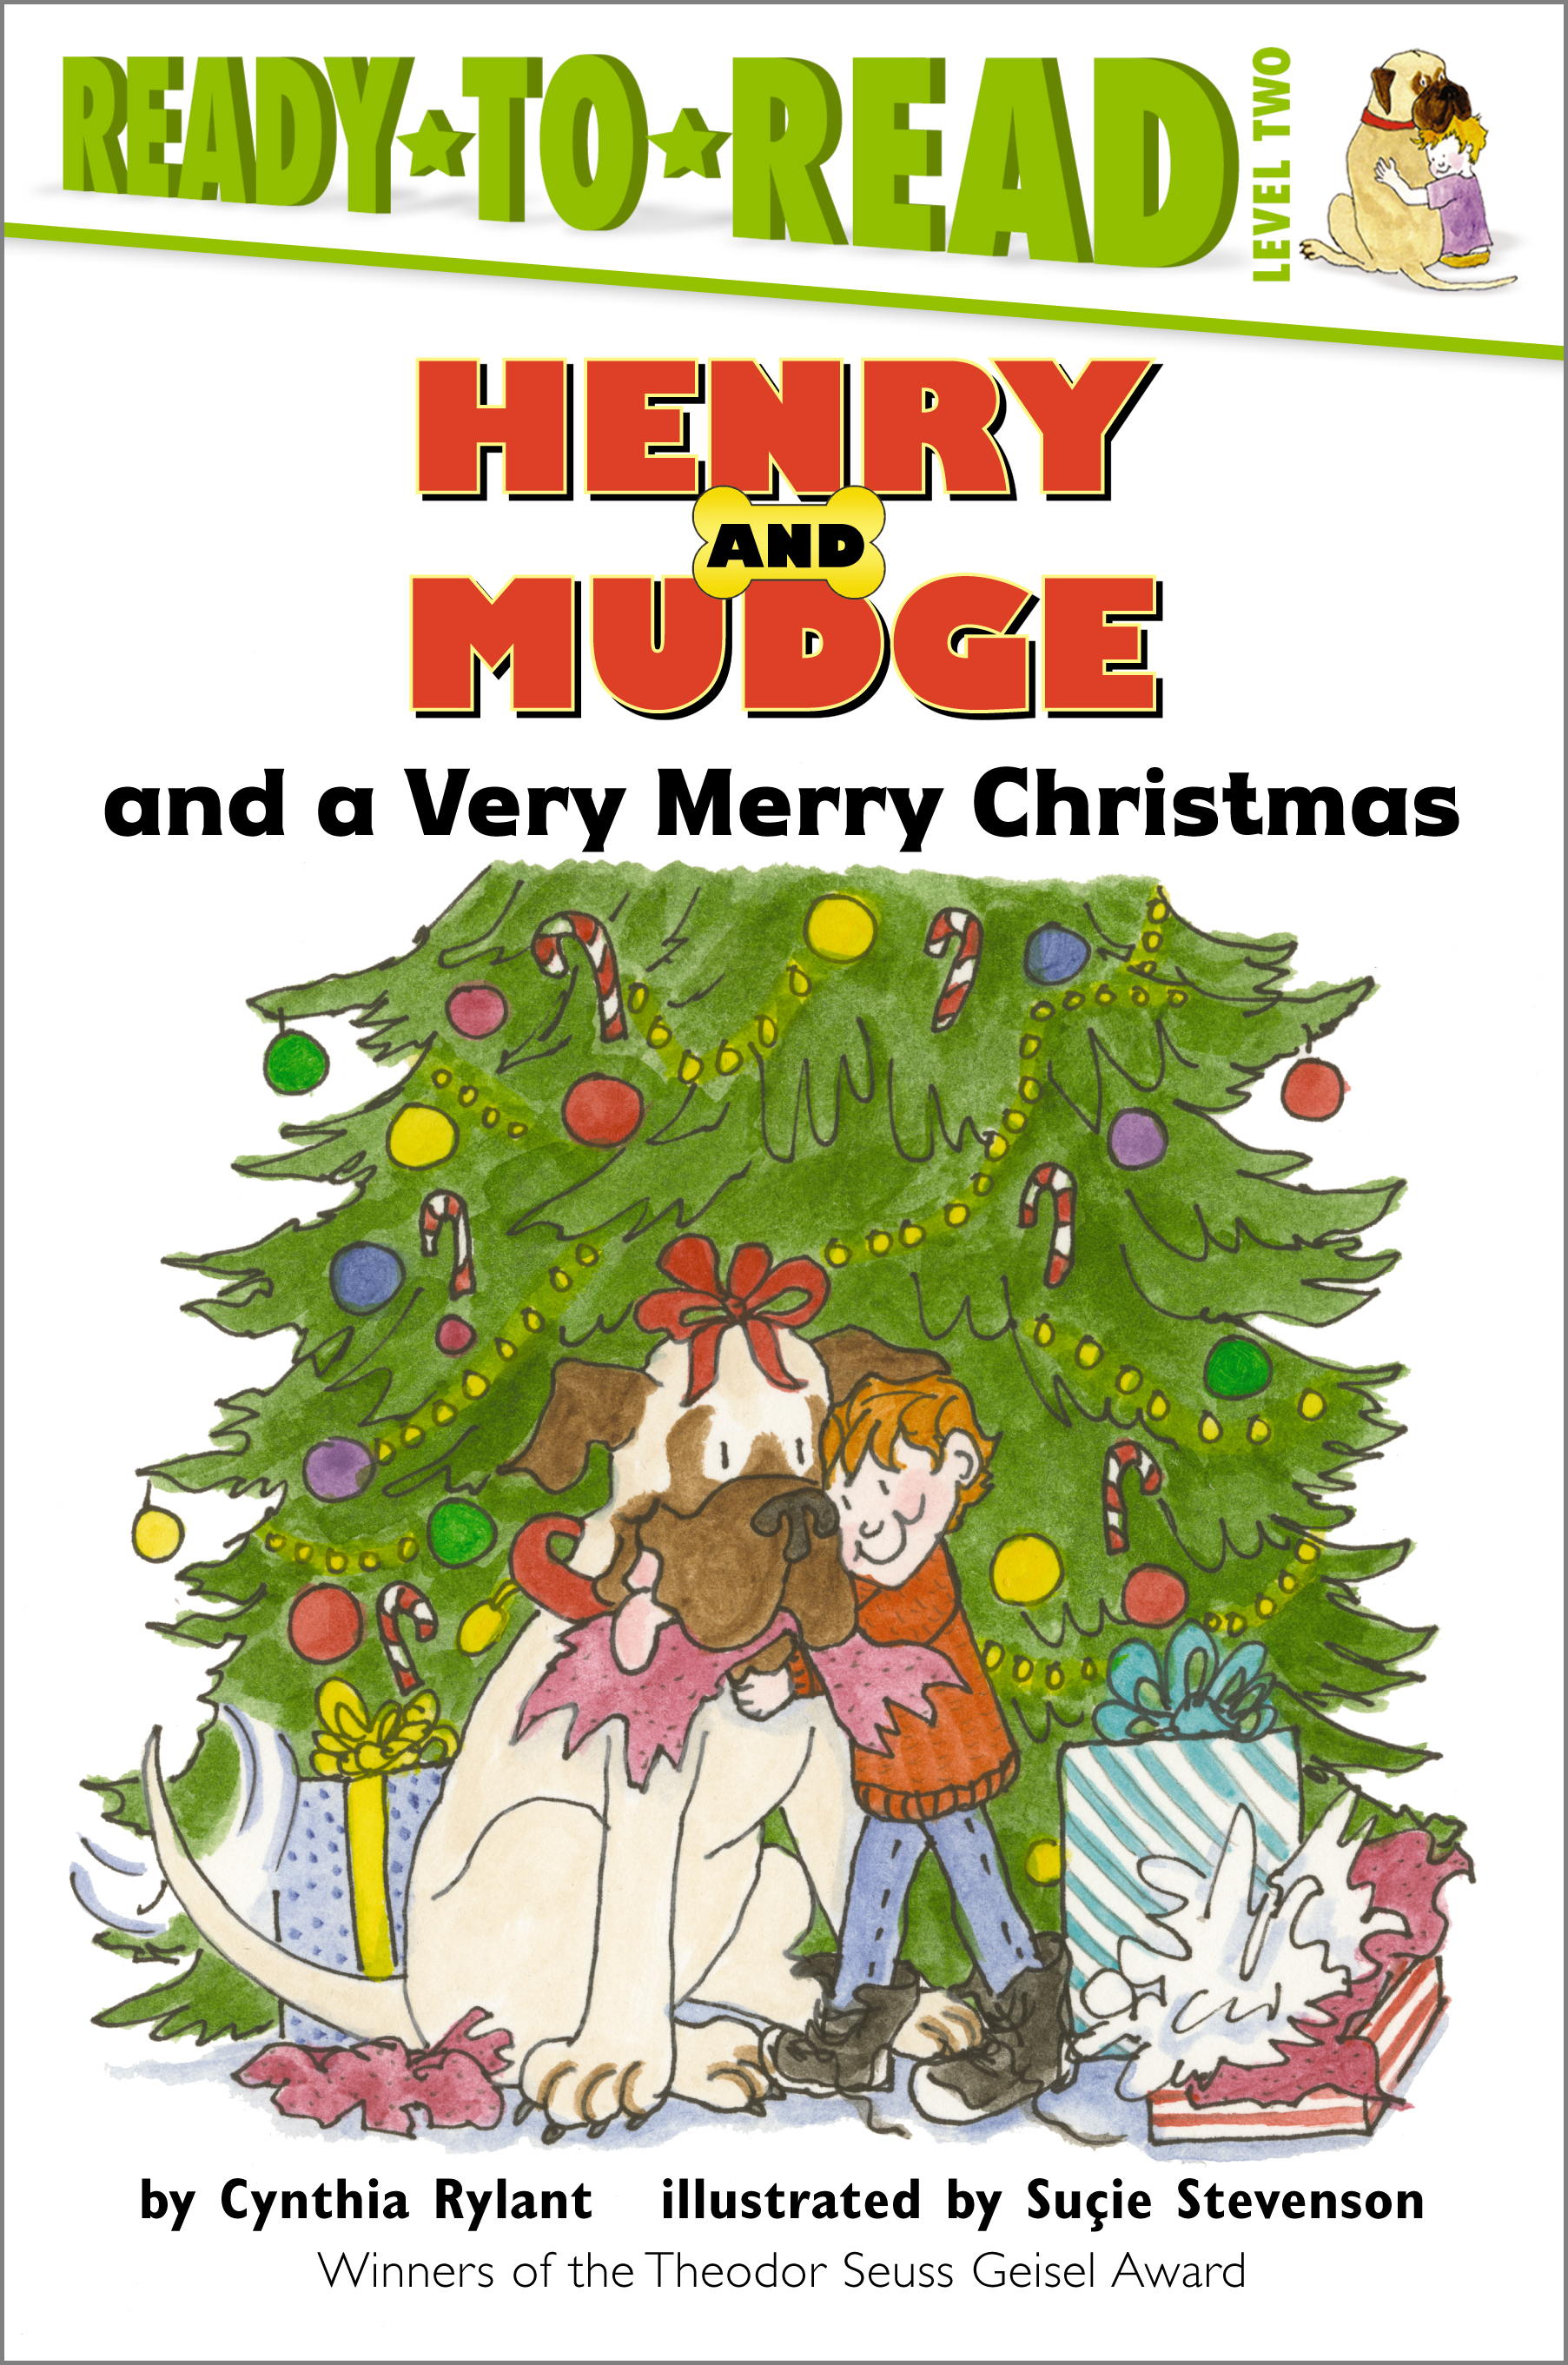 Book Cover Image (jpg): Henry and Mudge and a Very Merry Christmas